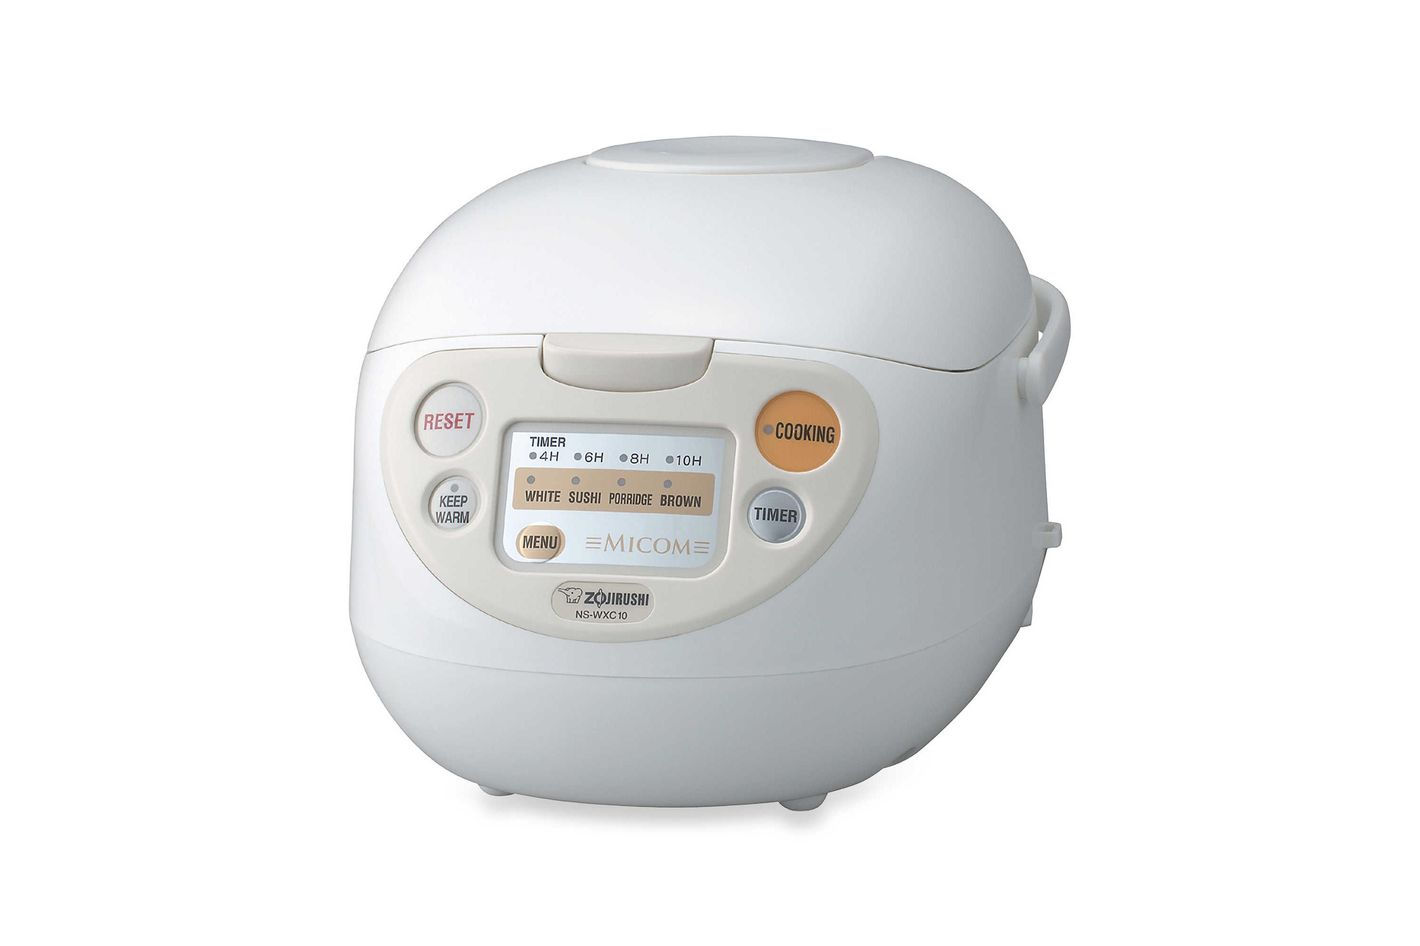 Zojirushi 5-1/2 Cup Micom Rice Warmer & Cooker